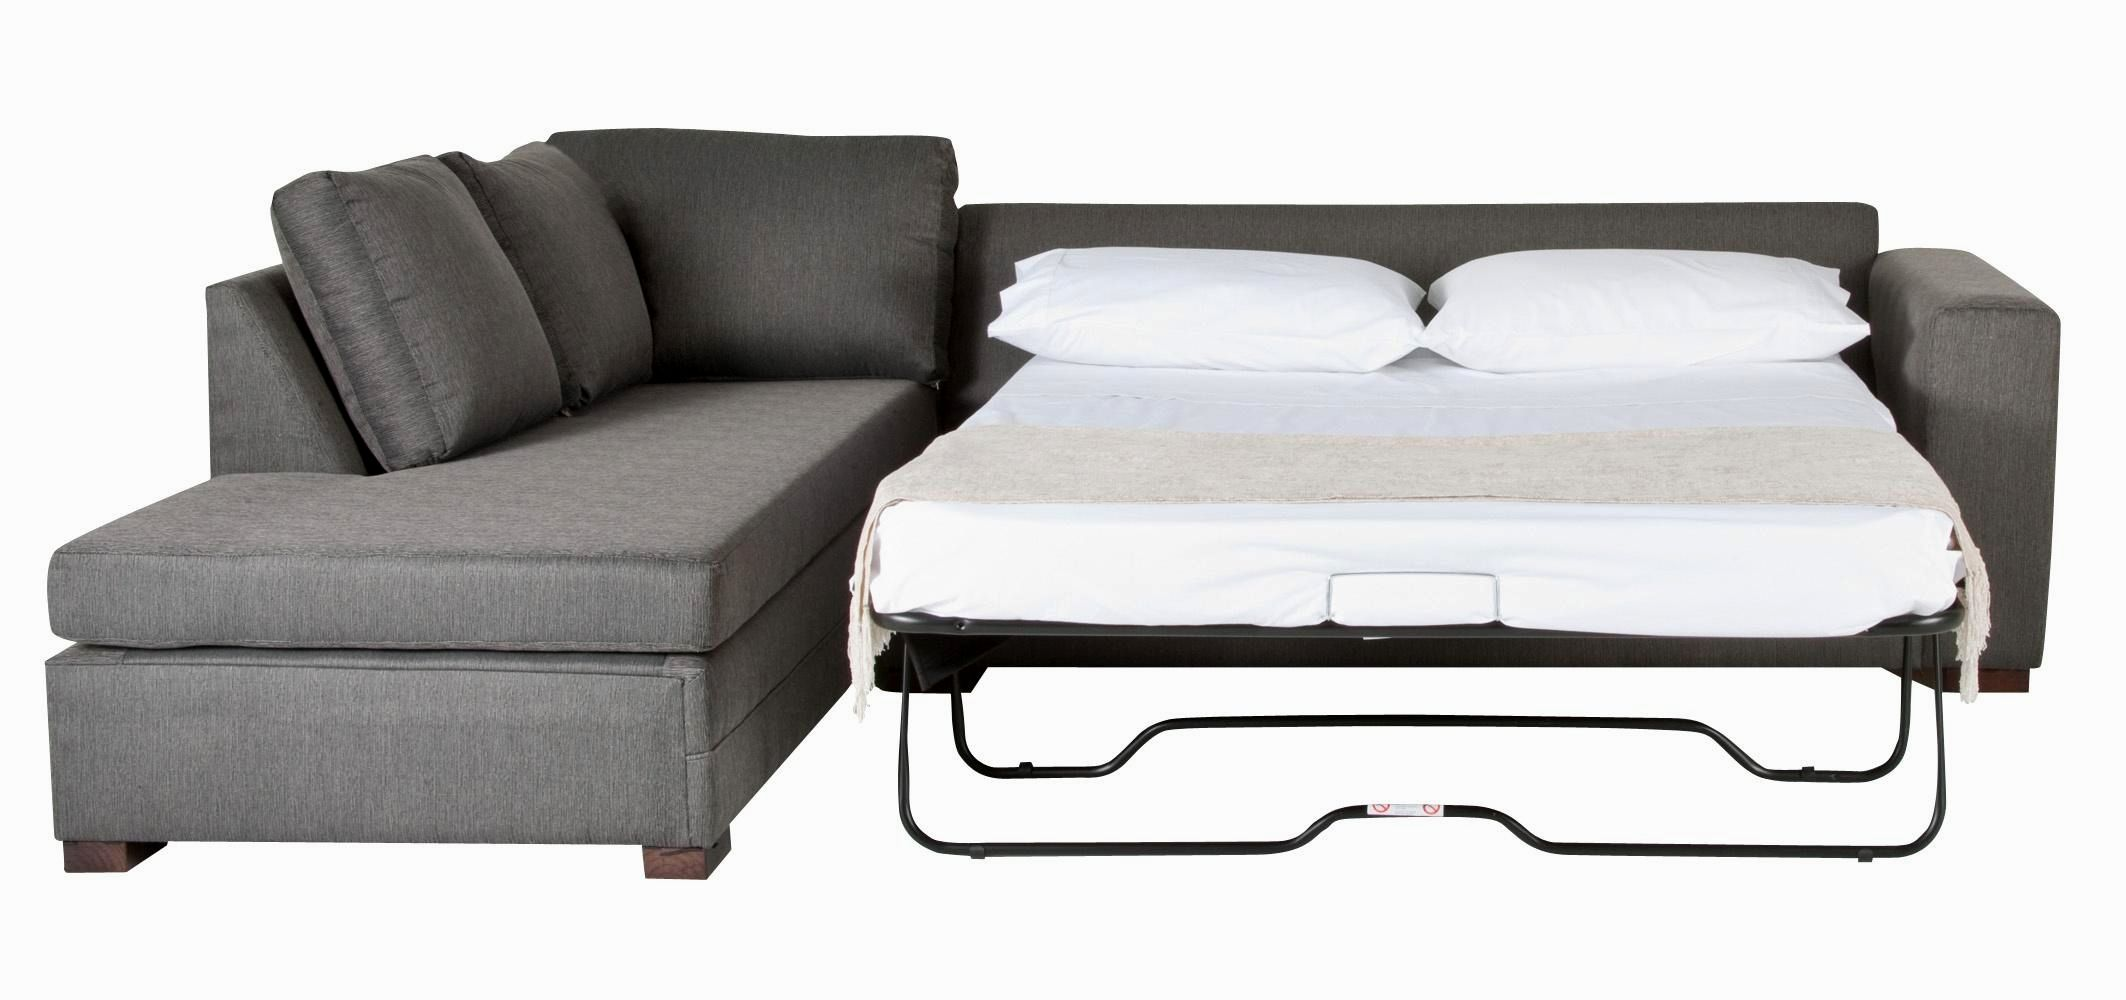 latest rv sofa bed for sale décor-Inspirational Rv sofa Bed for Sale Image